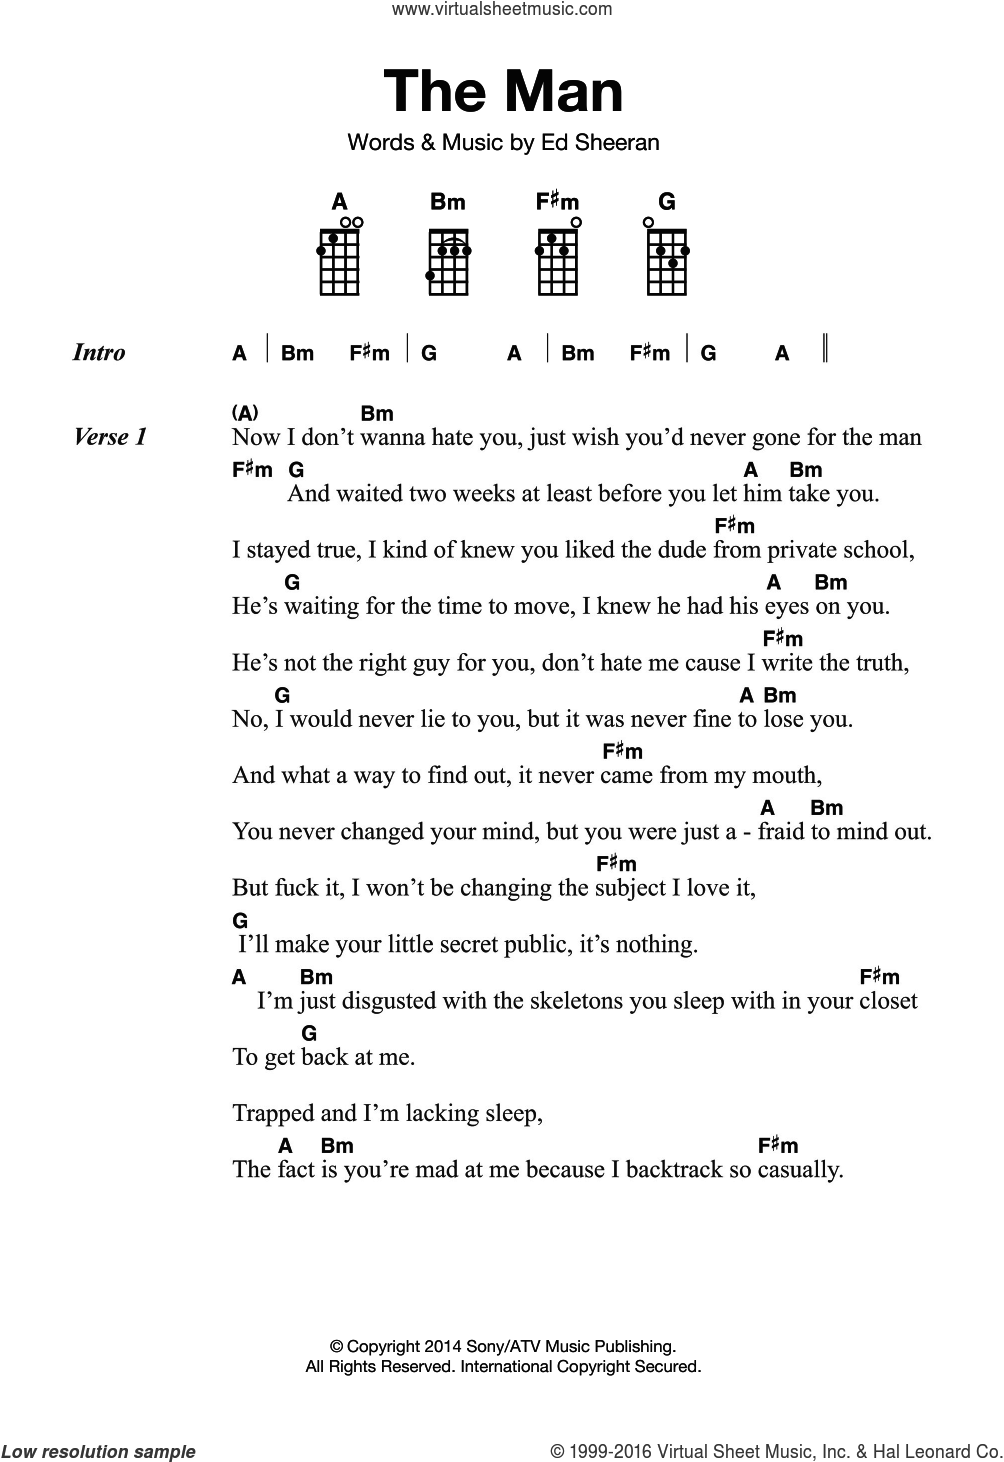 The Man sheet music for ukulele by Ed Sheeran, intermediate skill level